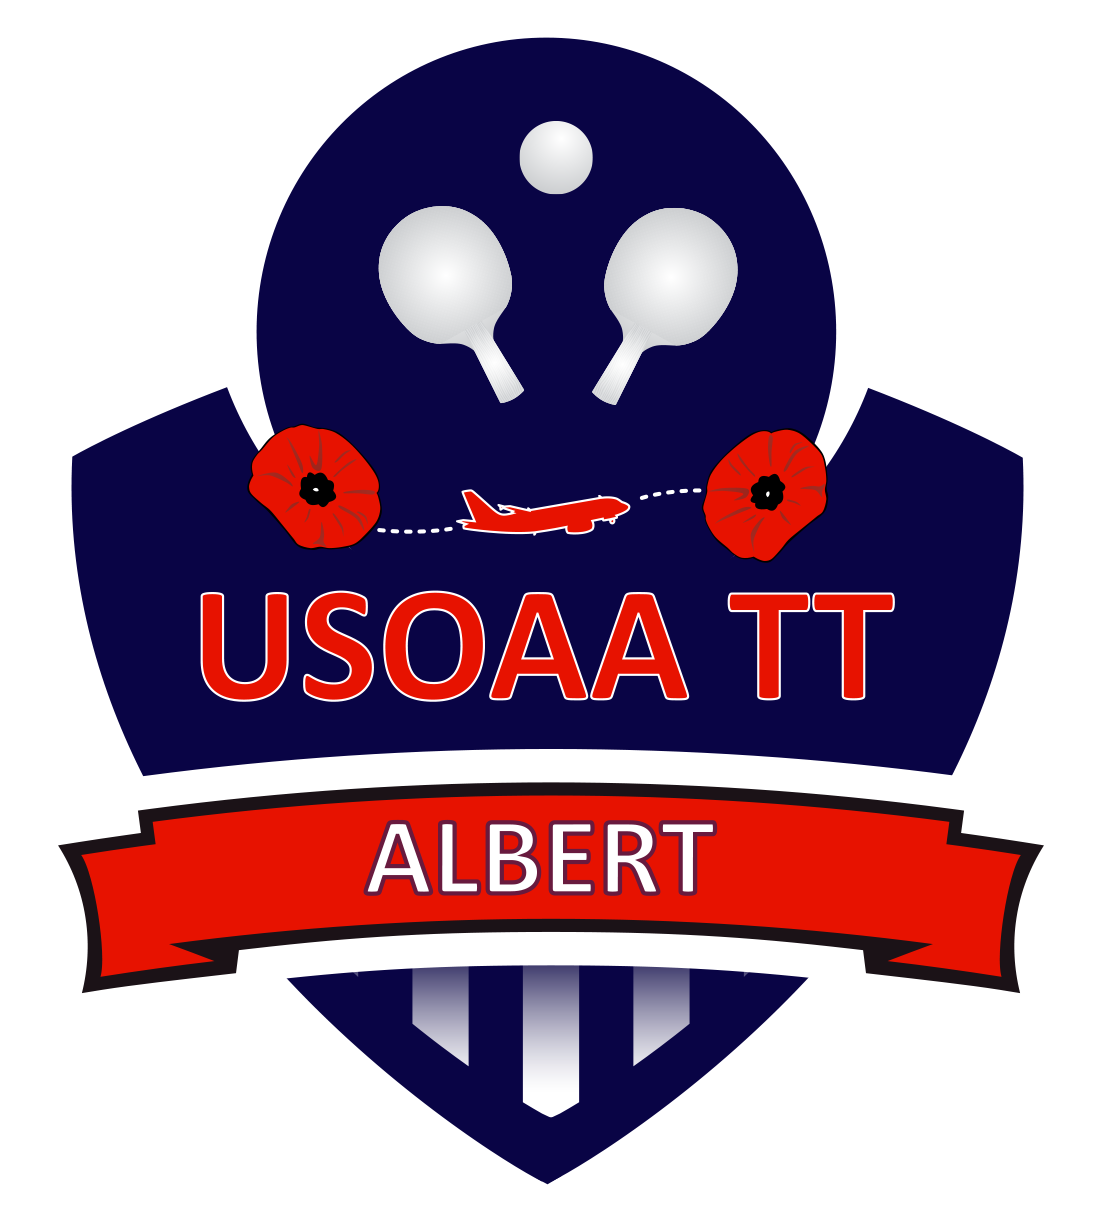 USOA ALBERT TENNIS DE TABLE